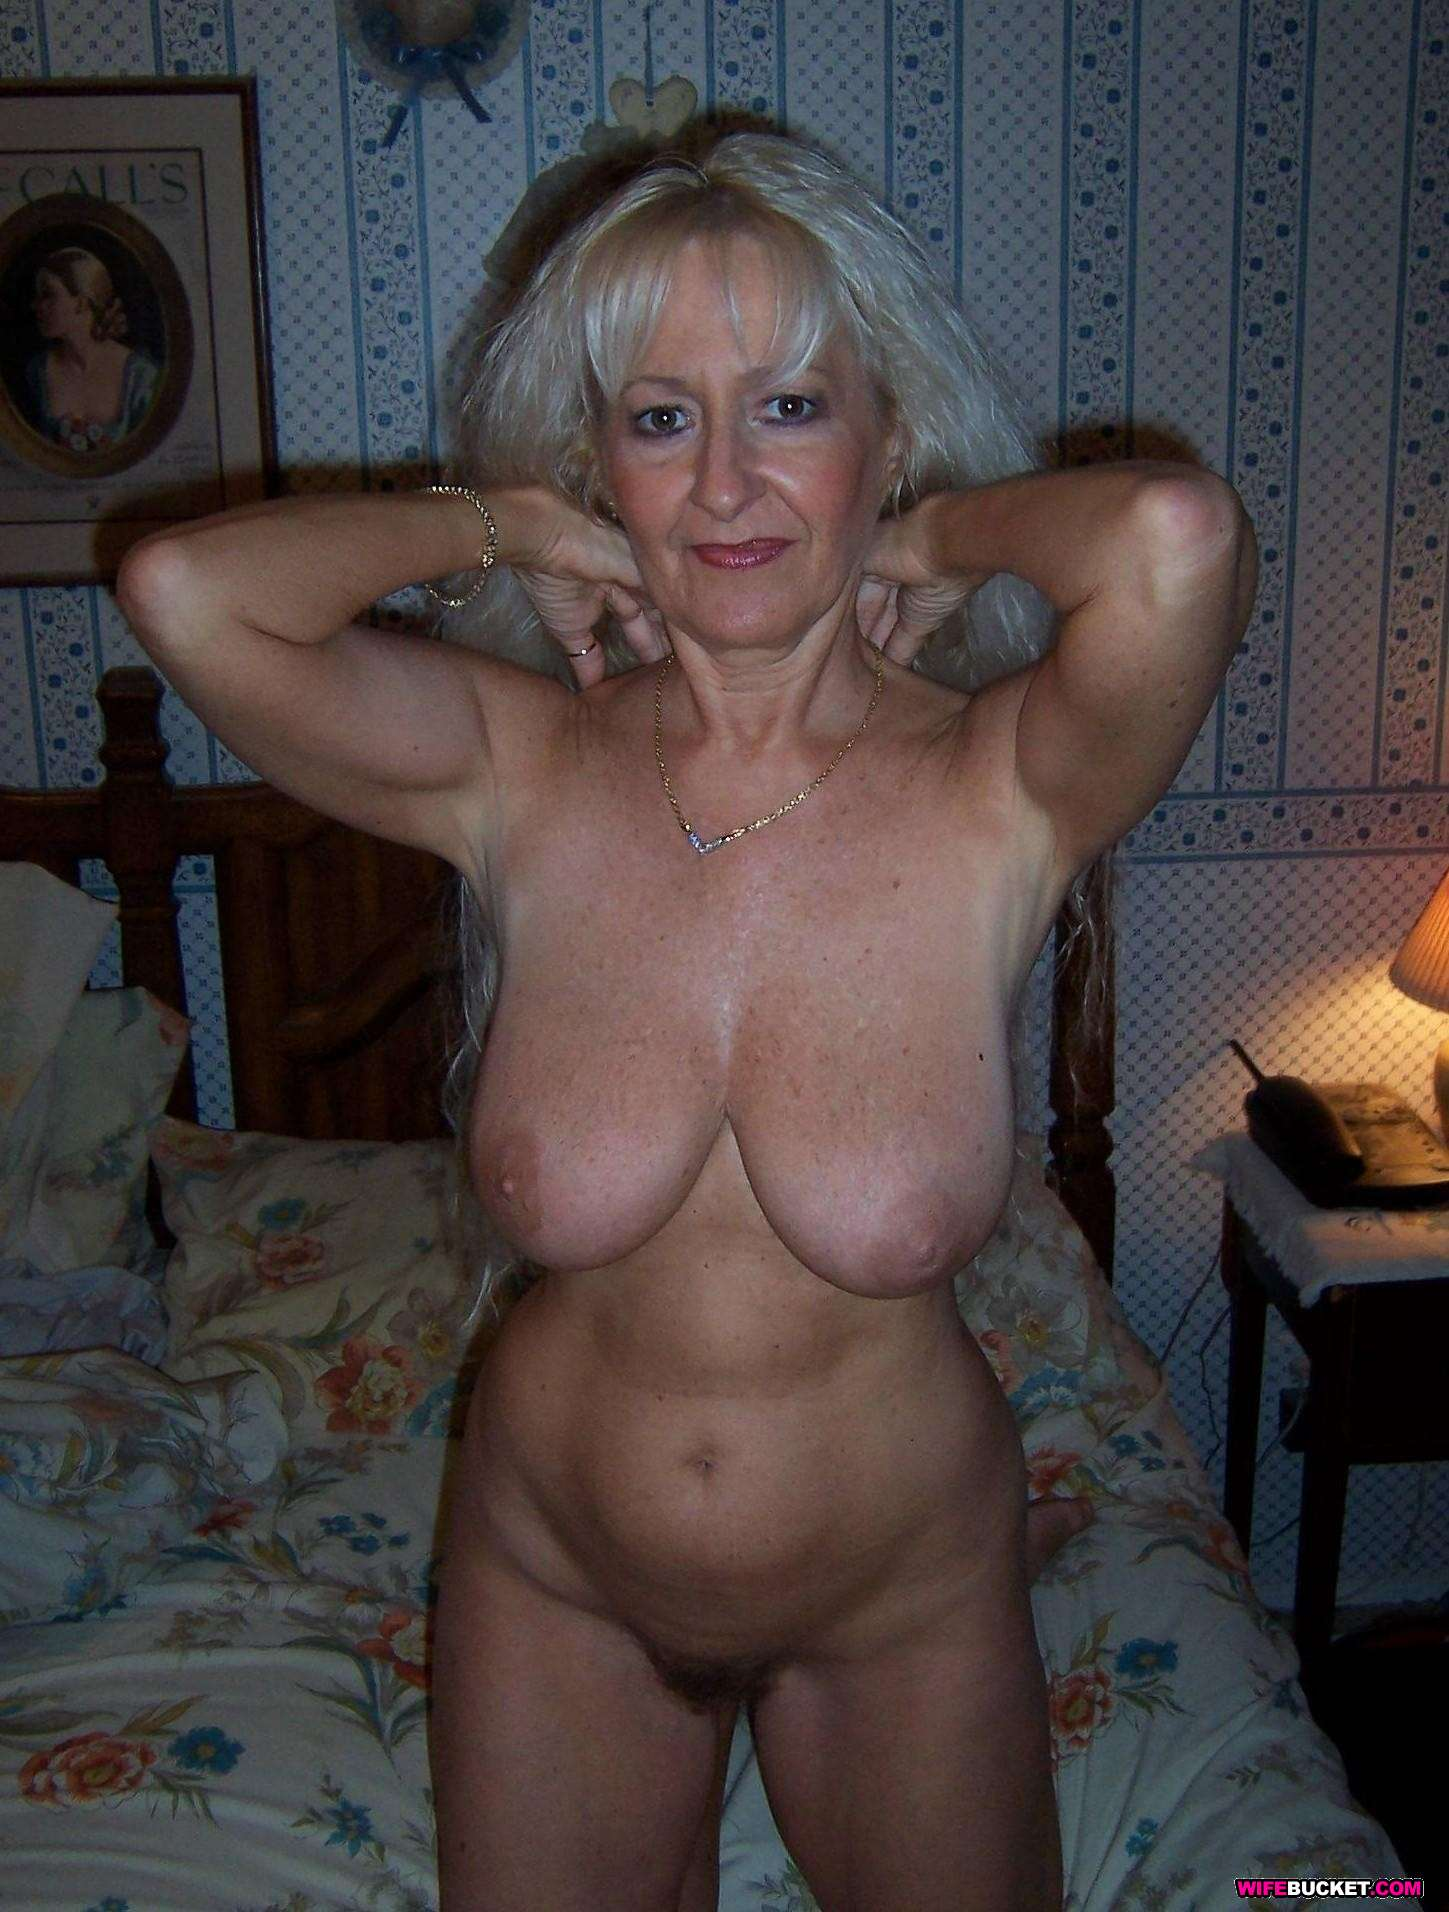 Another big titted lady gets a face full 5